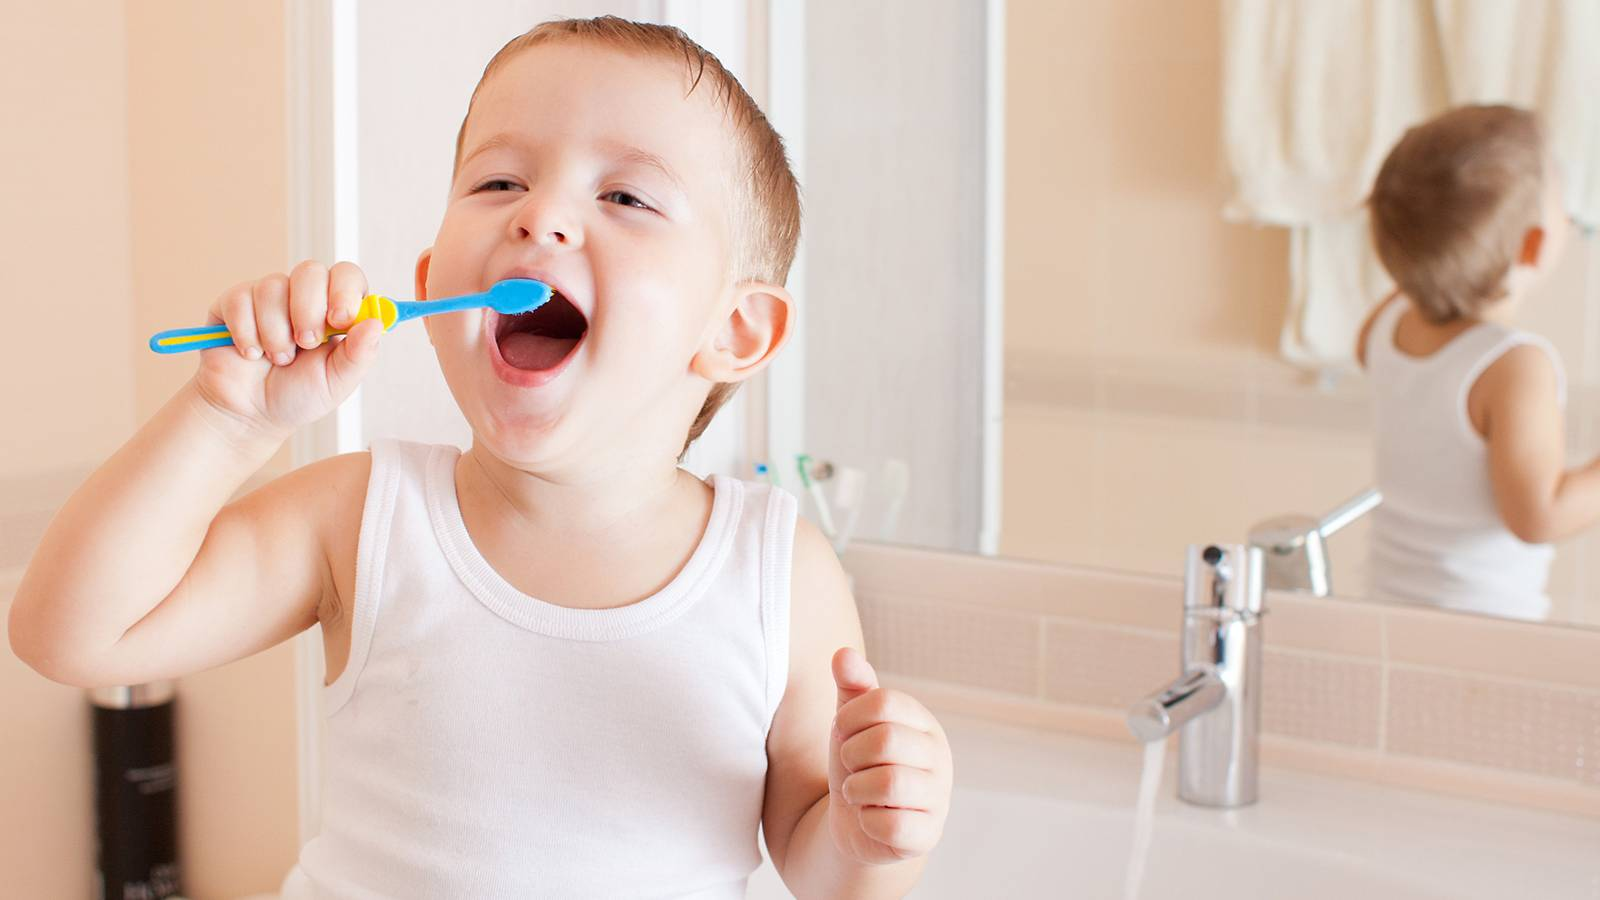 Tots-6-ways-to-make-toothbrushing-fun-for-junior-[Infographic]-Main